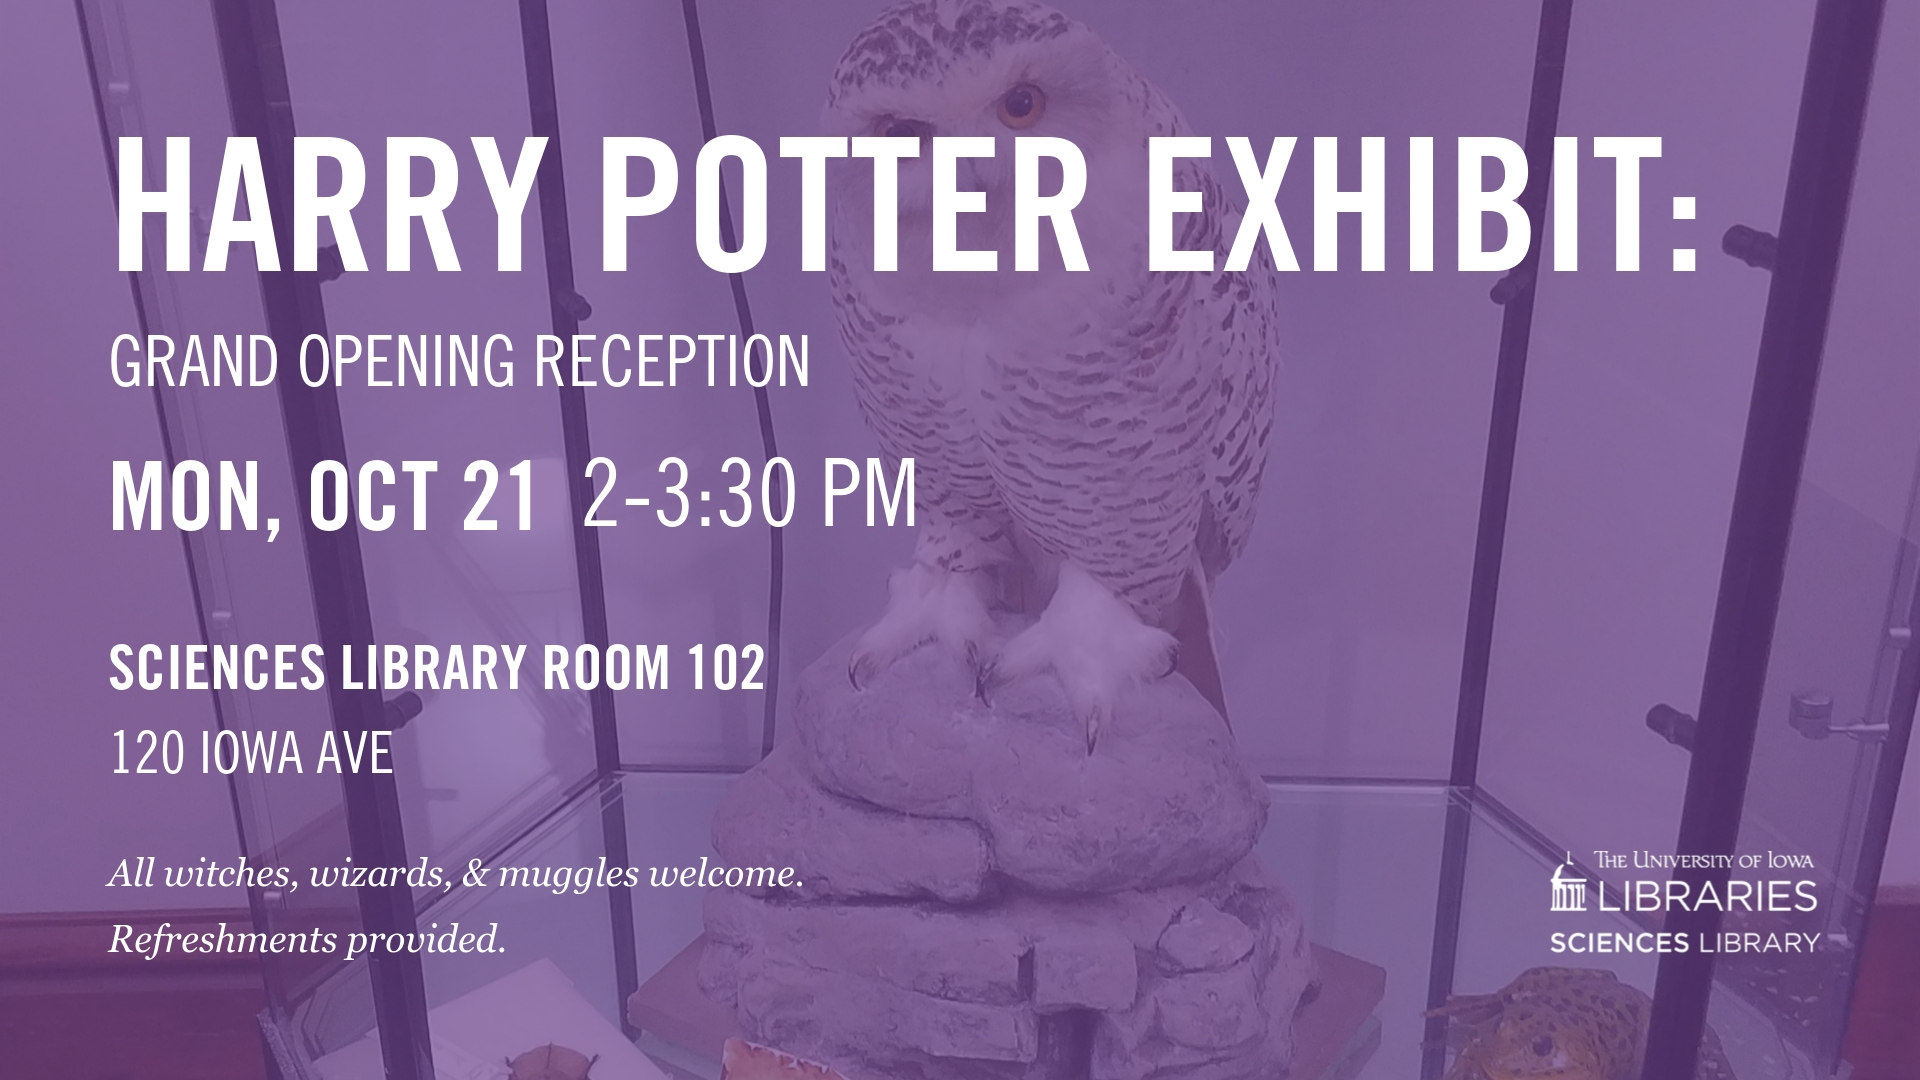 Harry Potter Exhibit: Opening Reception. Mon October 21 from 2 to 3:30. Sciences Library room 102.